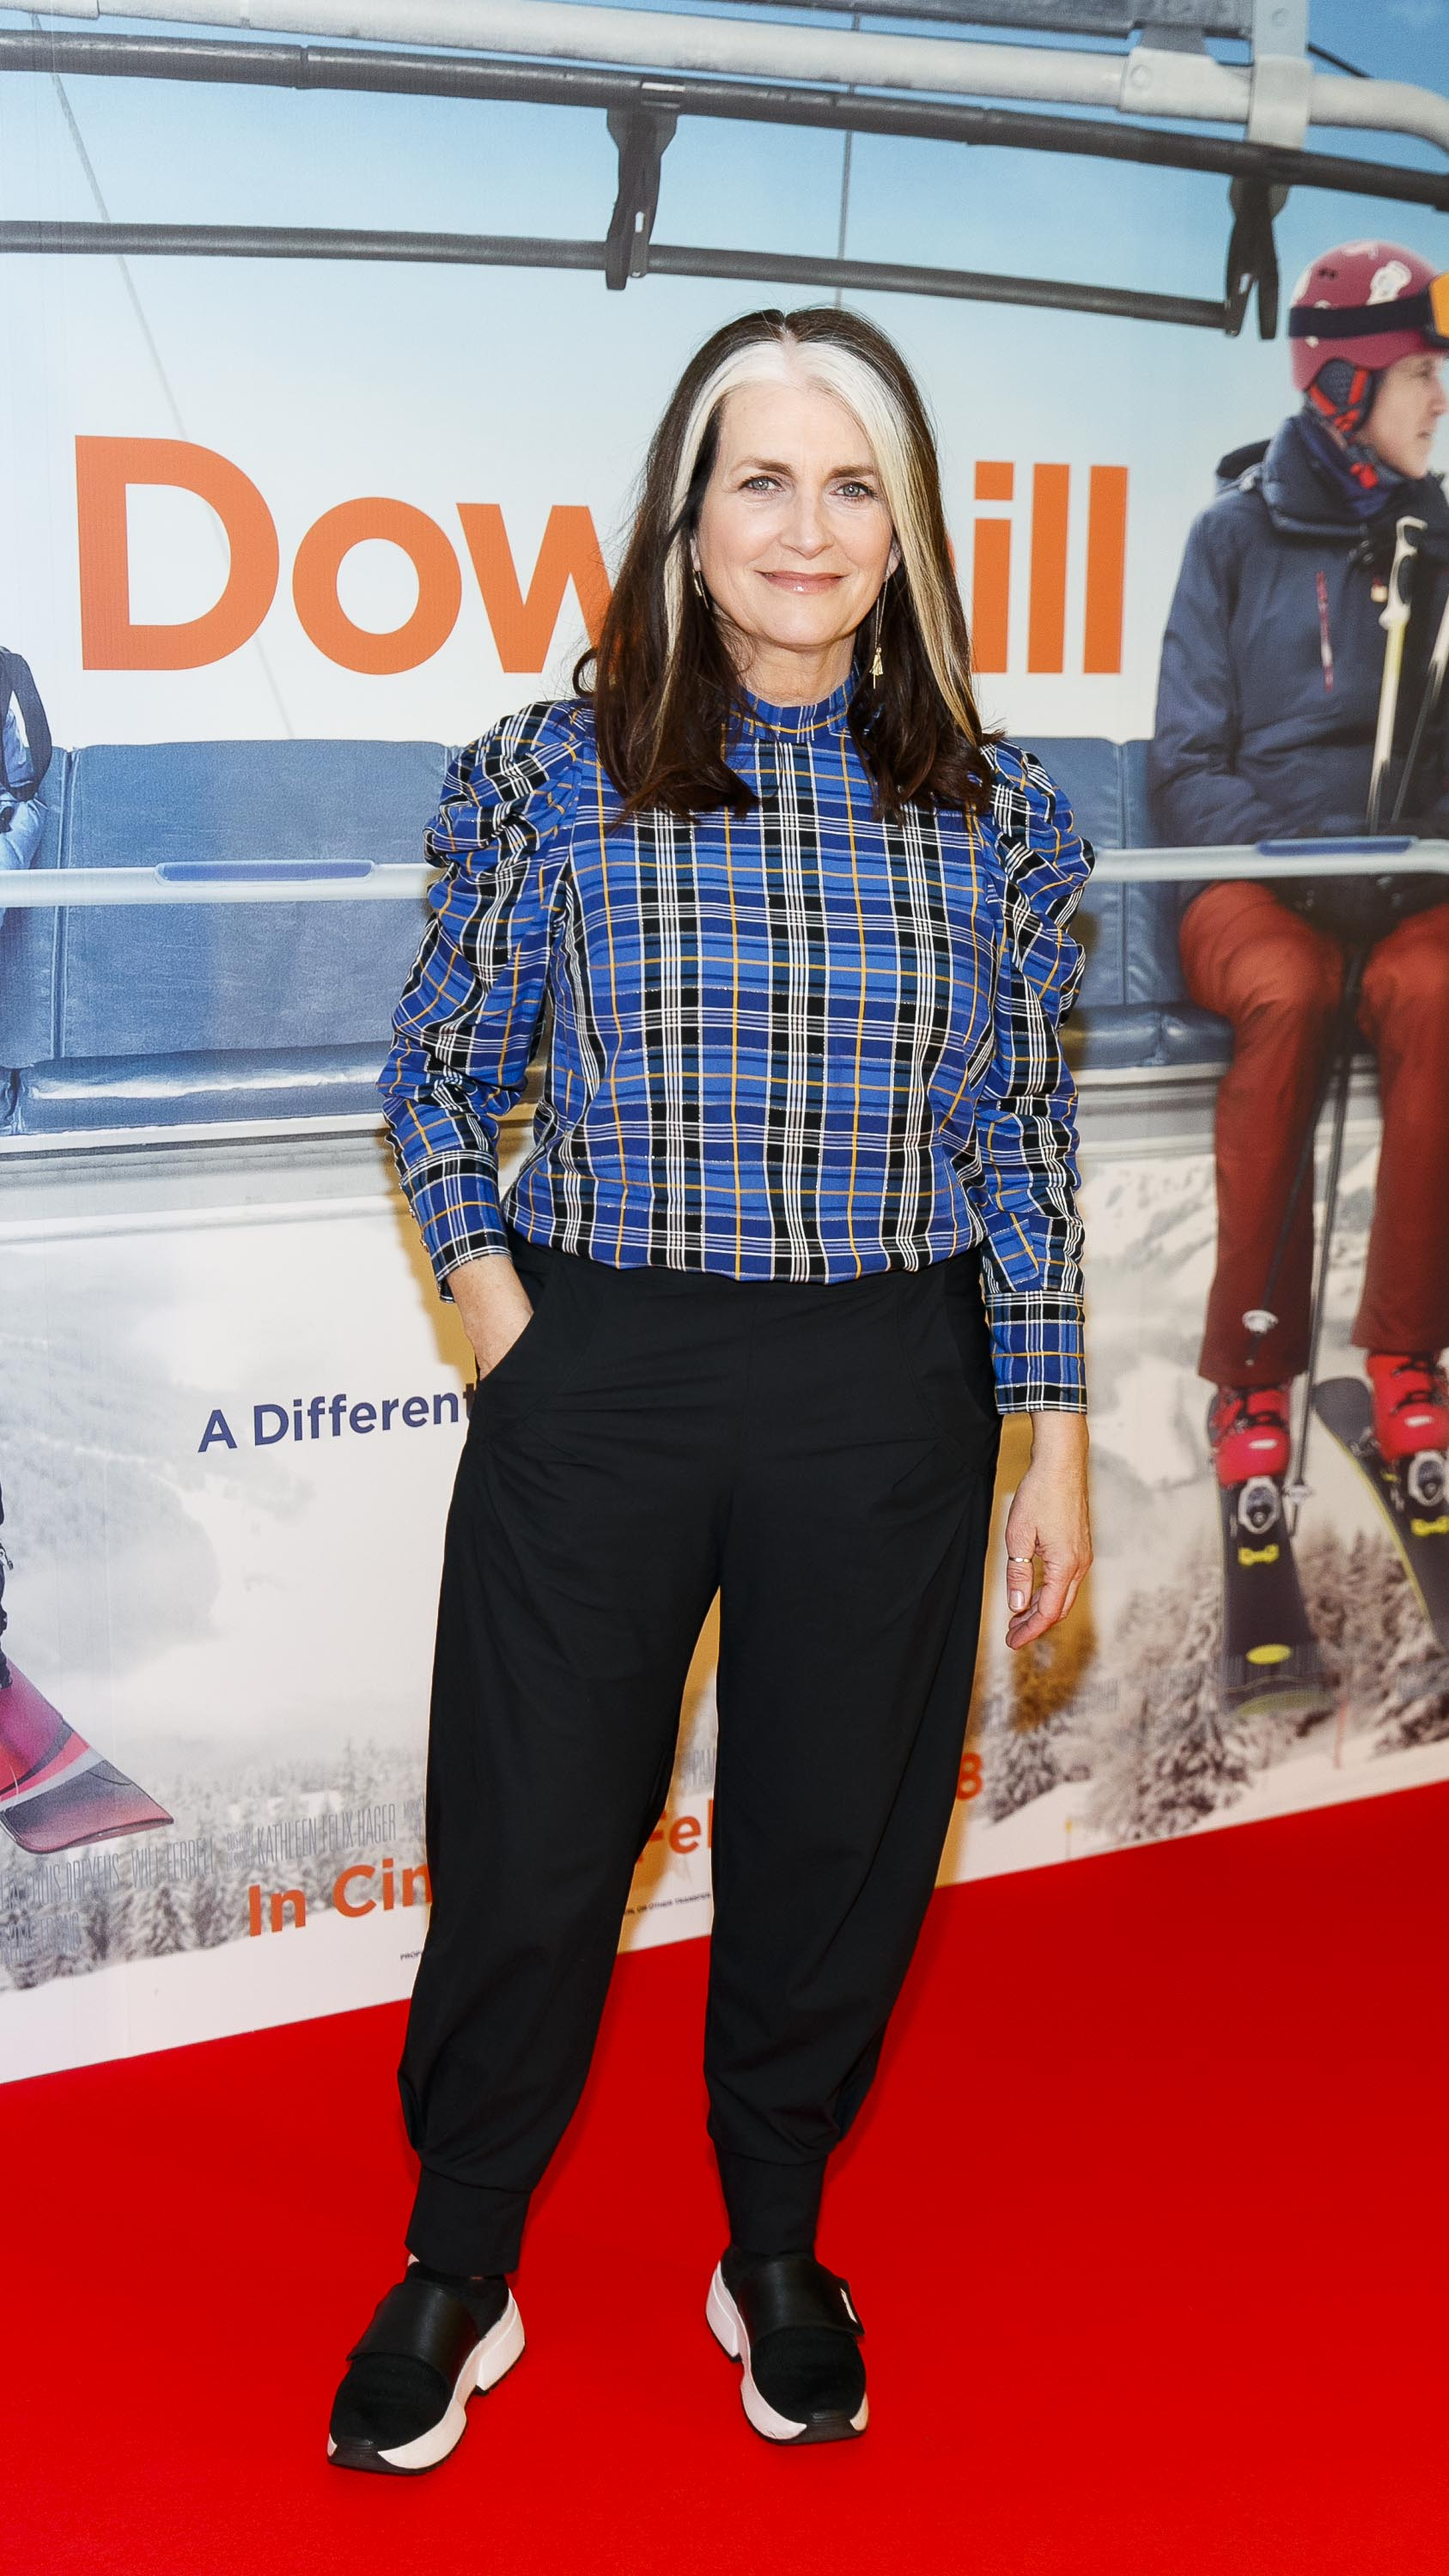 Cathy O'Connor pictured at a special preview screening of Downhill at the Light House Cinema, Dublin. Picture: Andres Poveda.